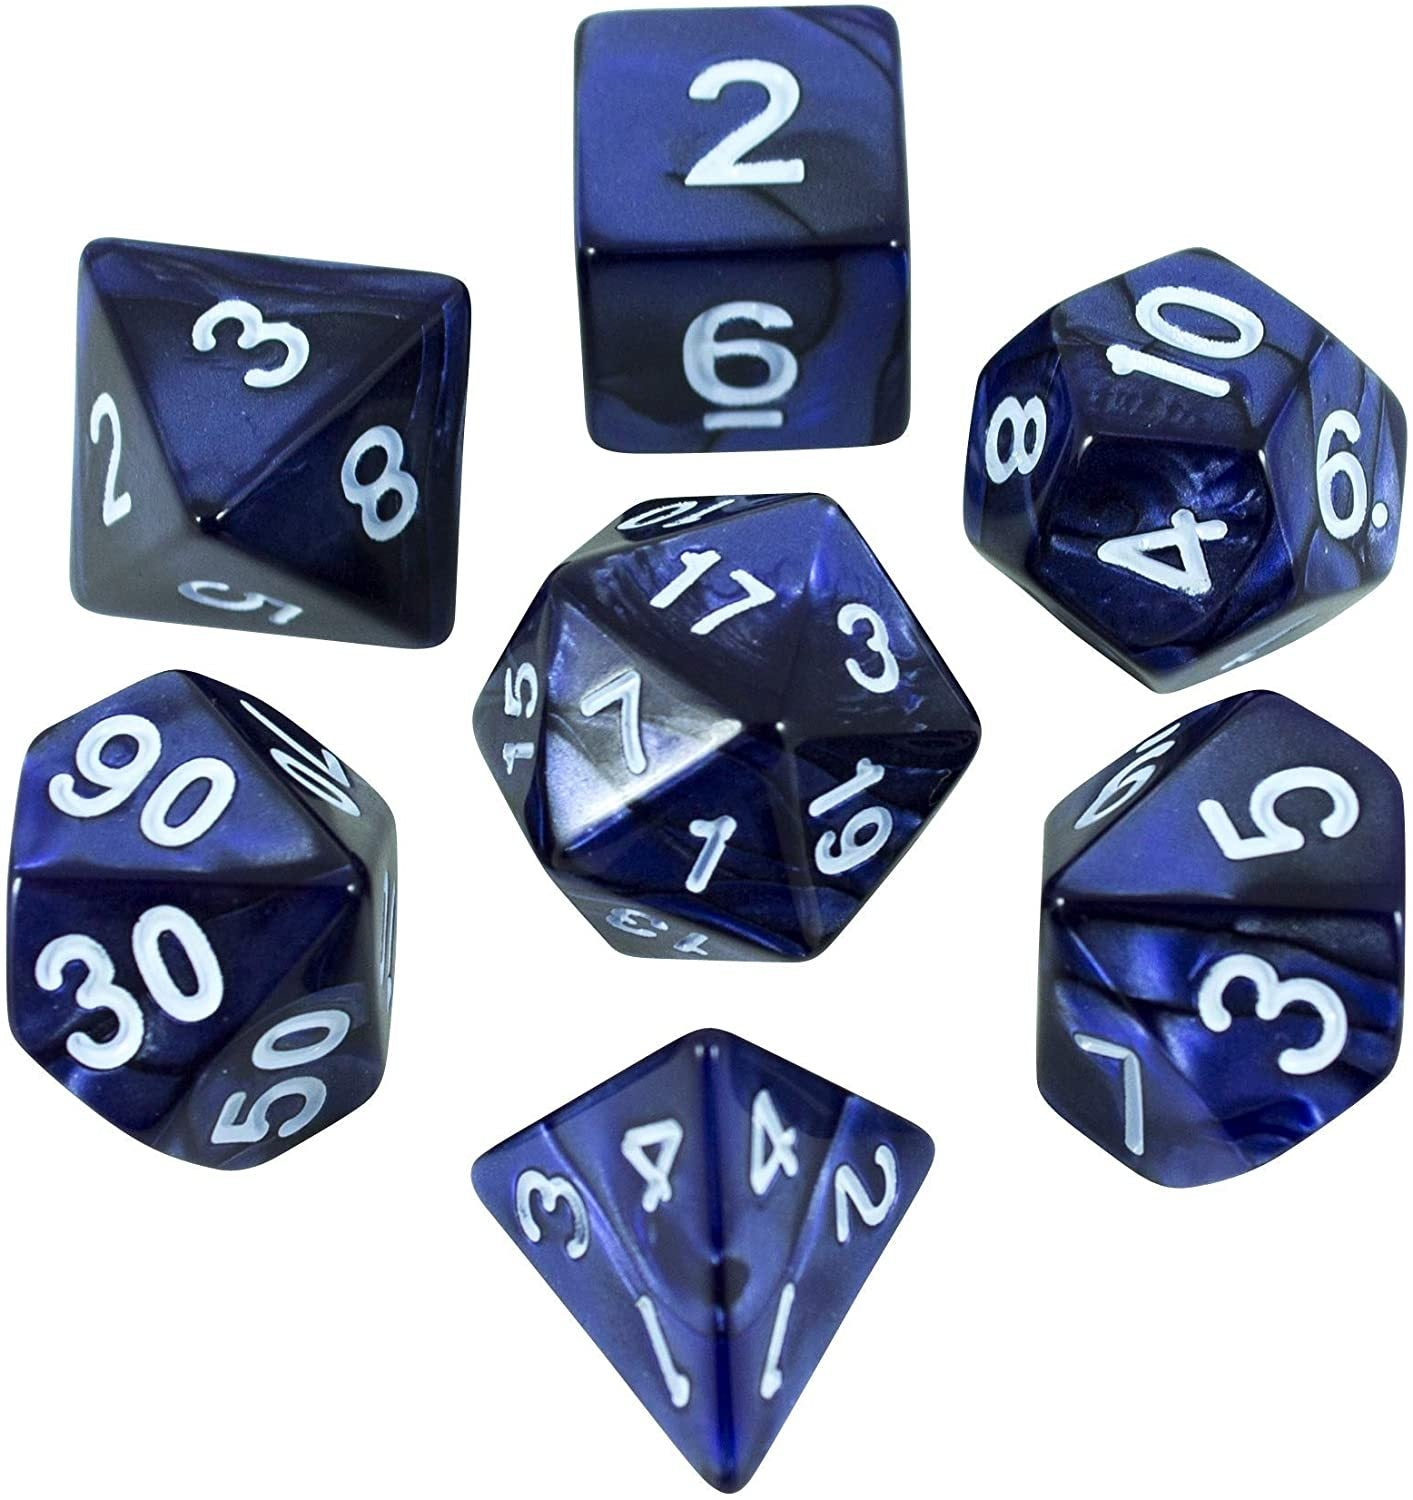 Paladin Roleplaying Blue Pearl RPG Dice - Full Polyhedral Set - 'Nightfall'